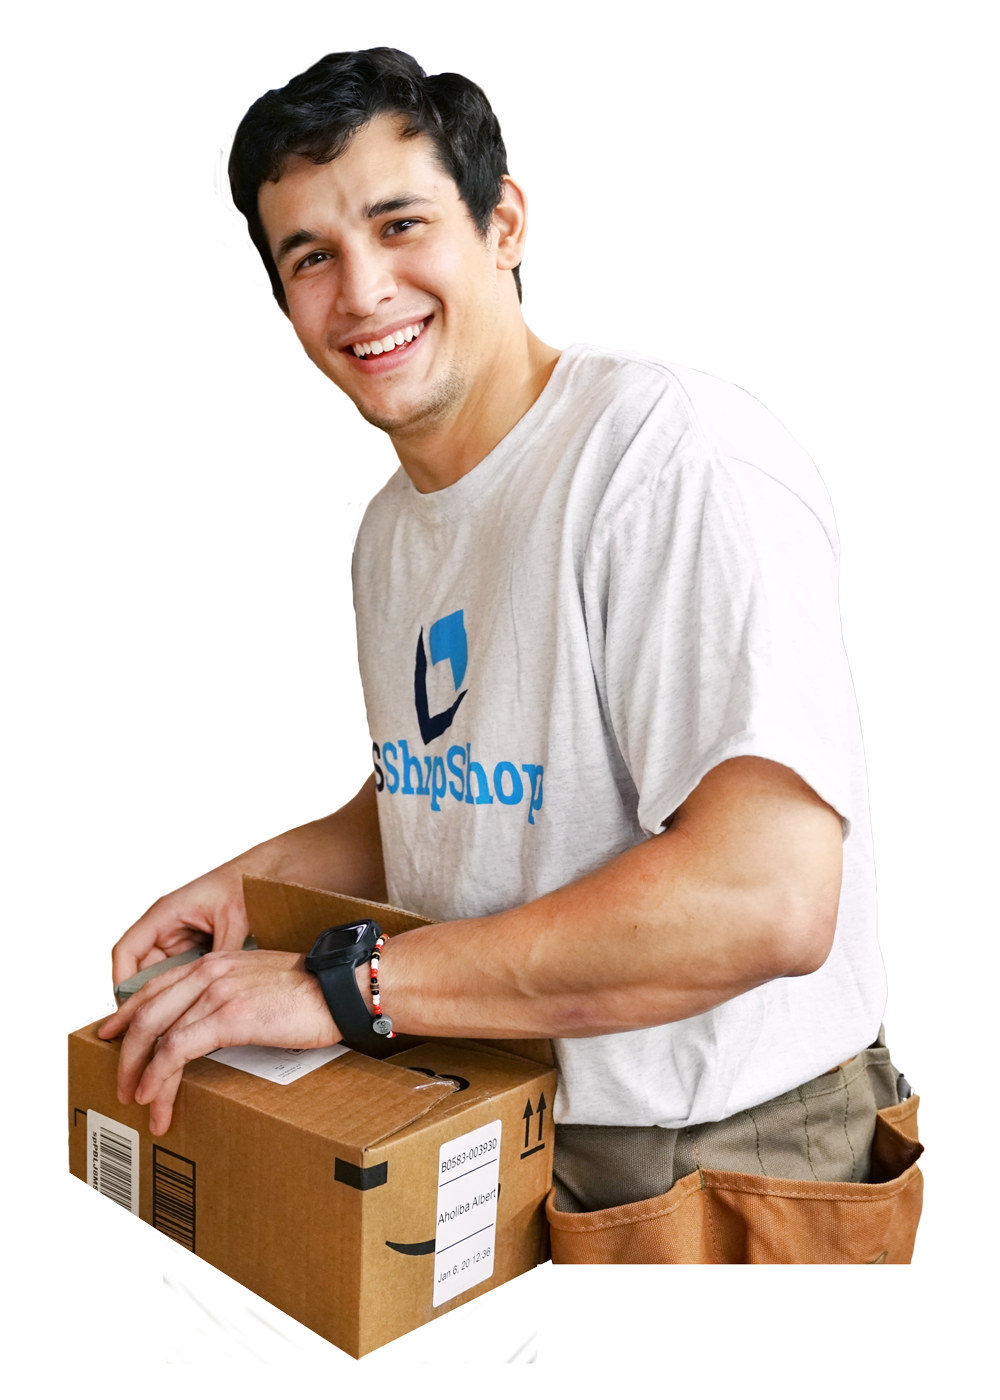 usshipshop employee packaging international shipments